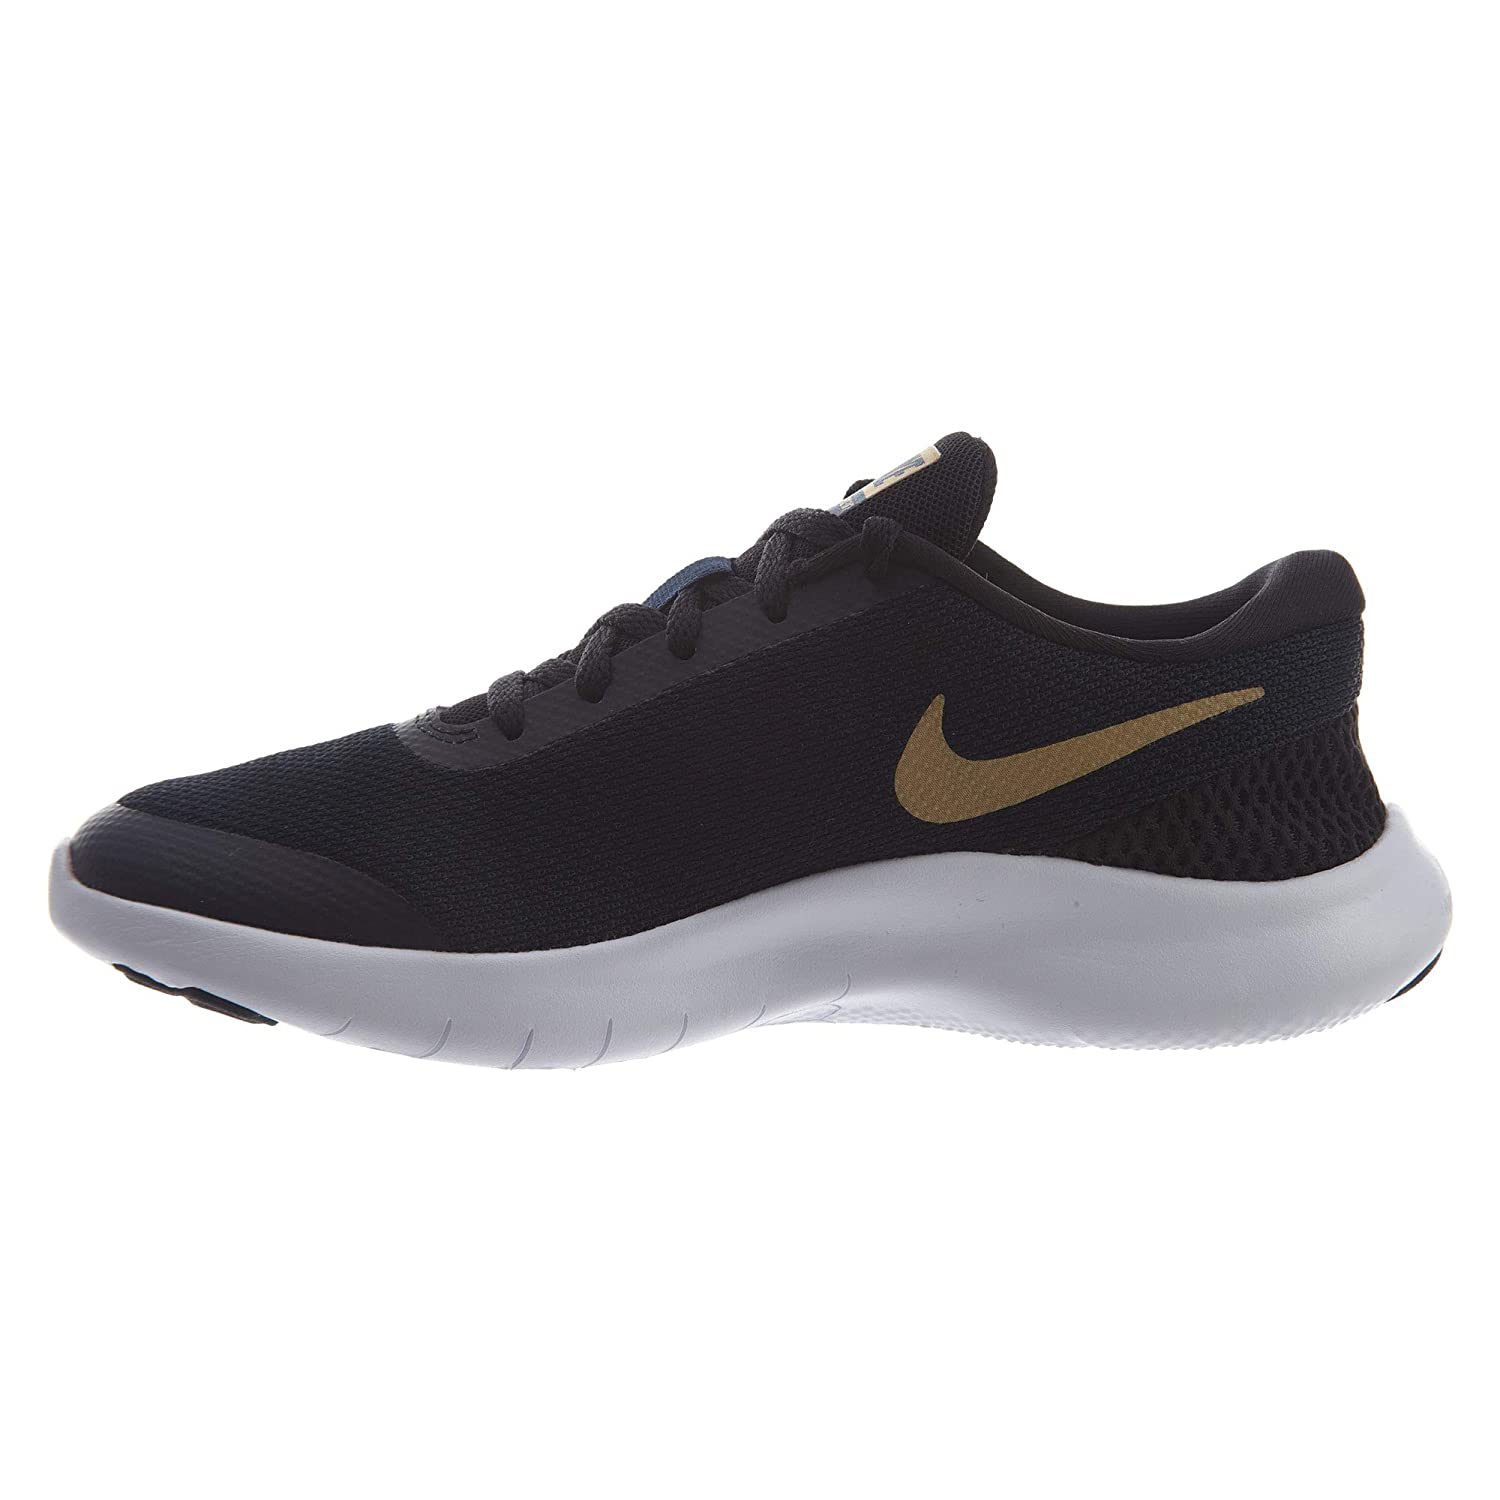 7bdab49f15806b Nike Women s W Flex Experience RN 7 Blk MTLC Gold-OBS-Wht Running Shoes-7  UK India (41 EU) (908996-012)  Amazon.in  Shoes   Handbags